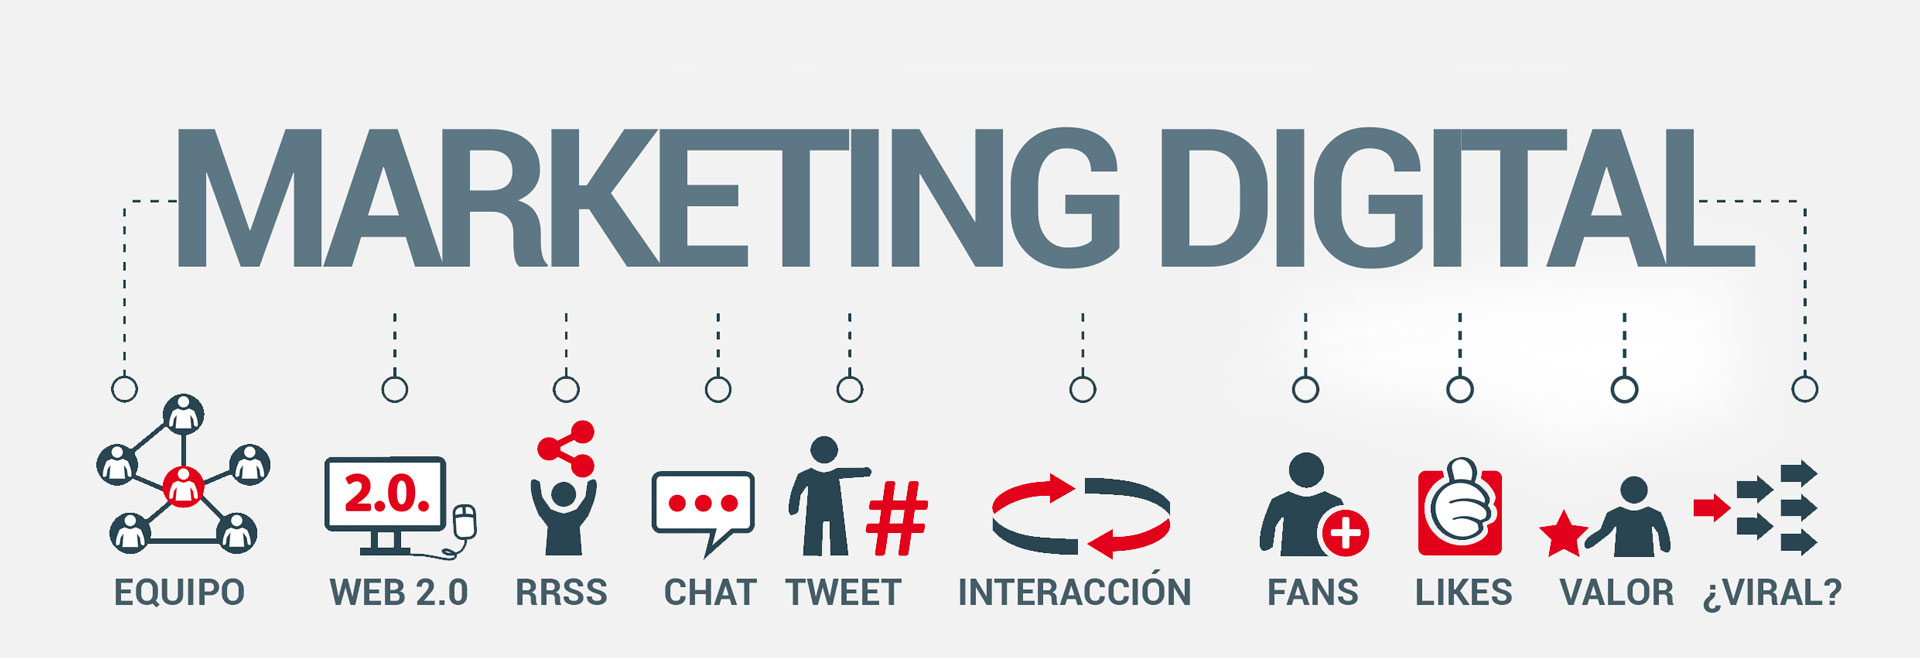 marketing-digital-pagina